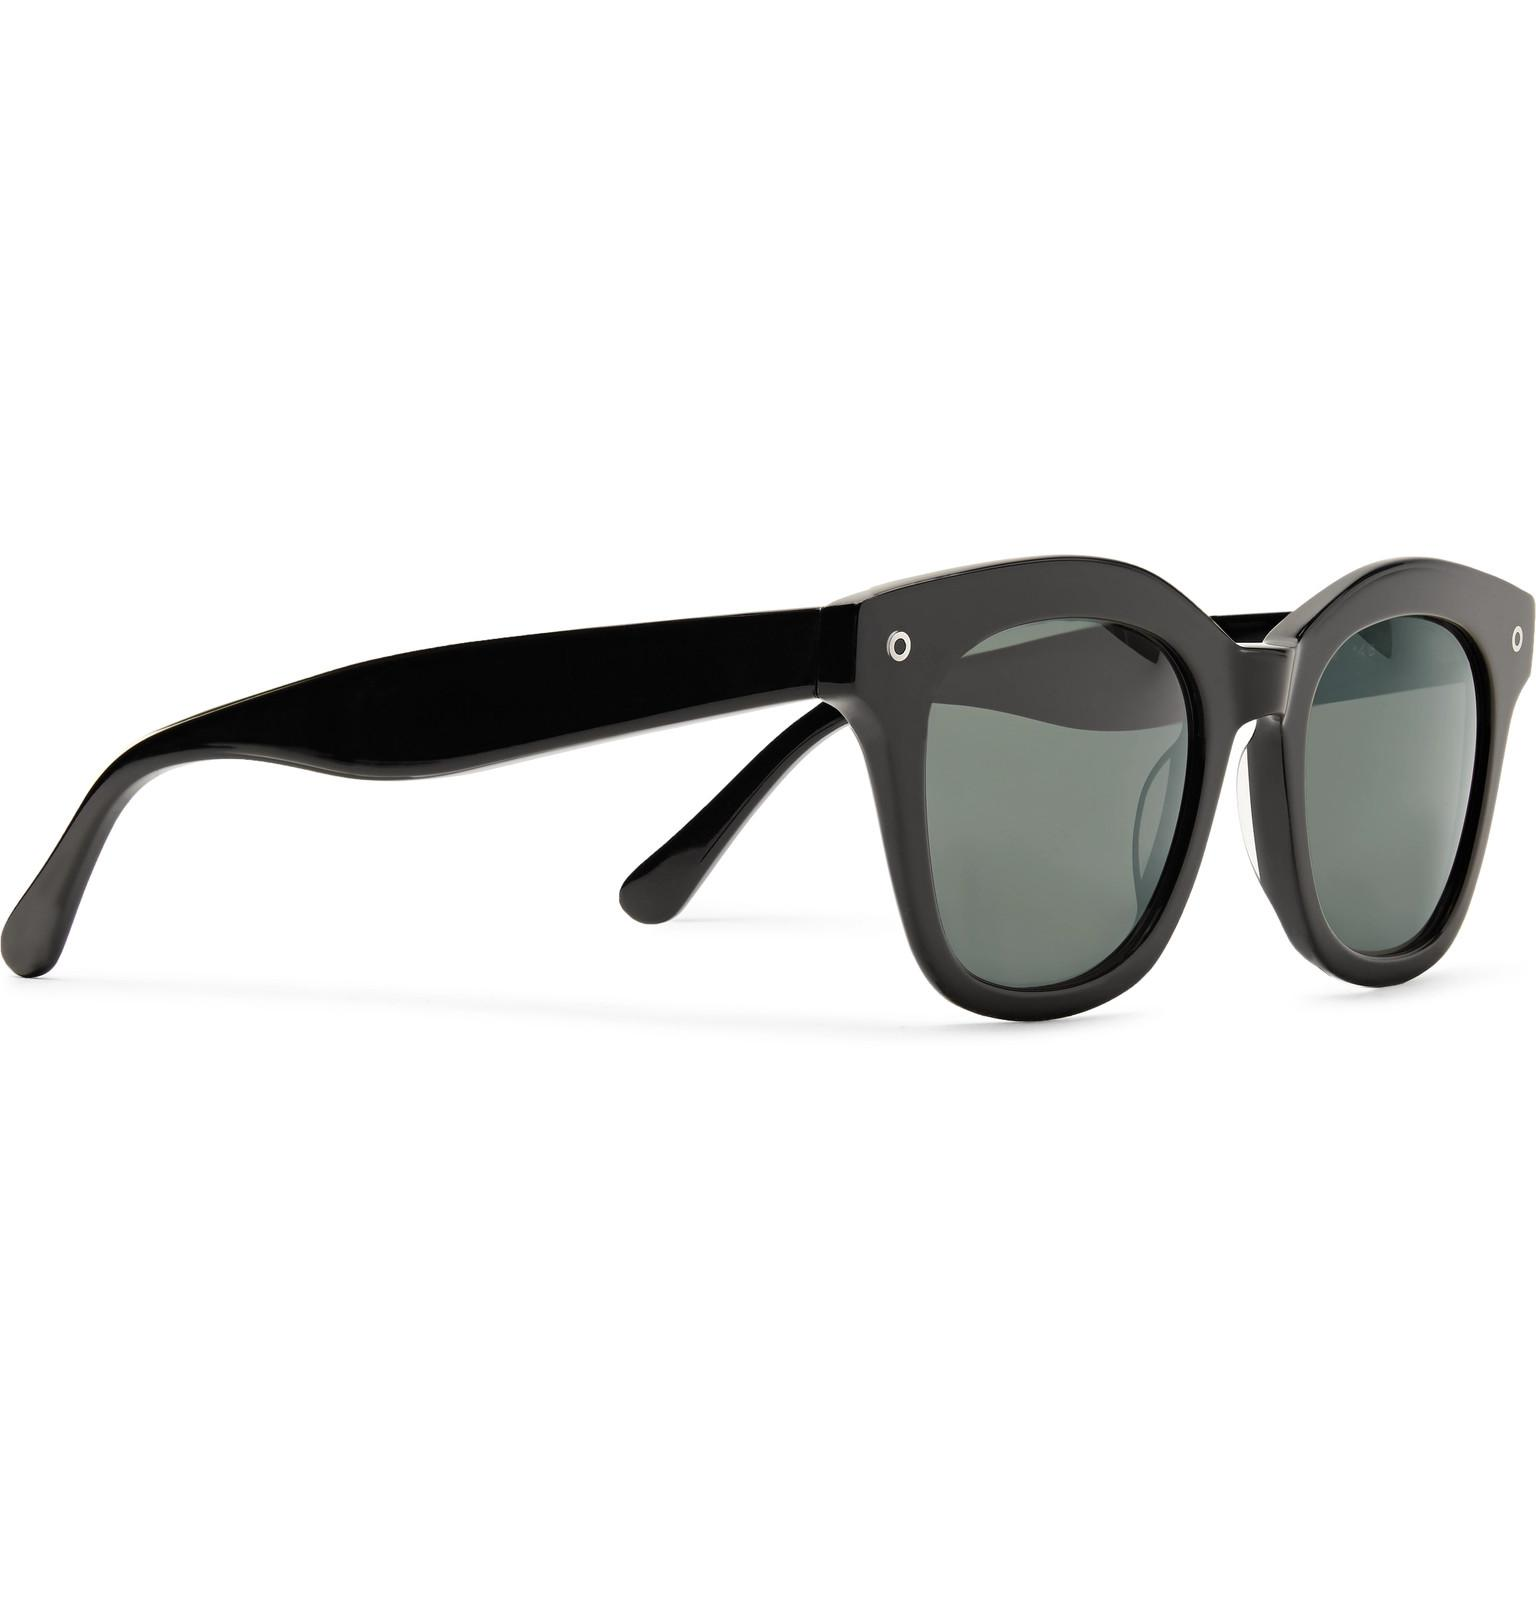 John Elliott D-frame Acetate Sunglasses in Black for Men